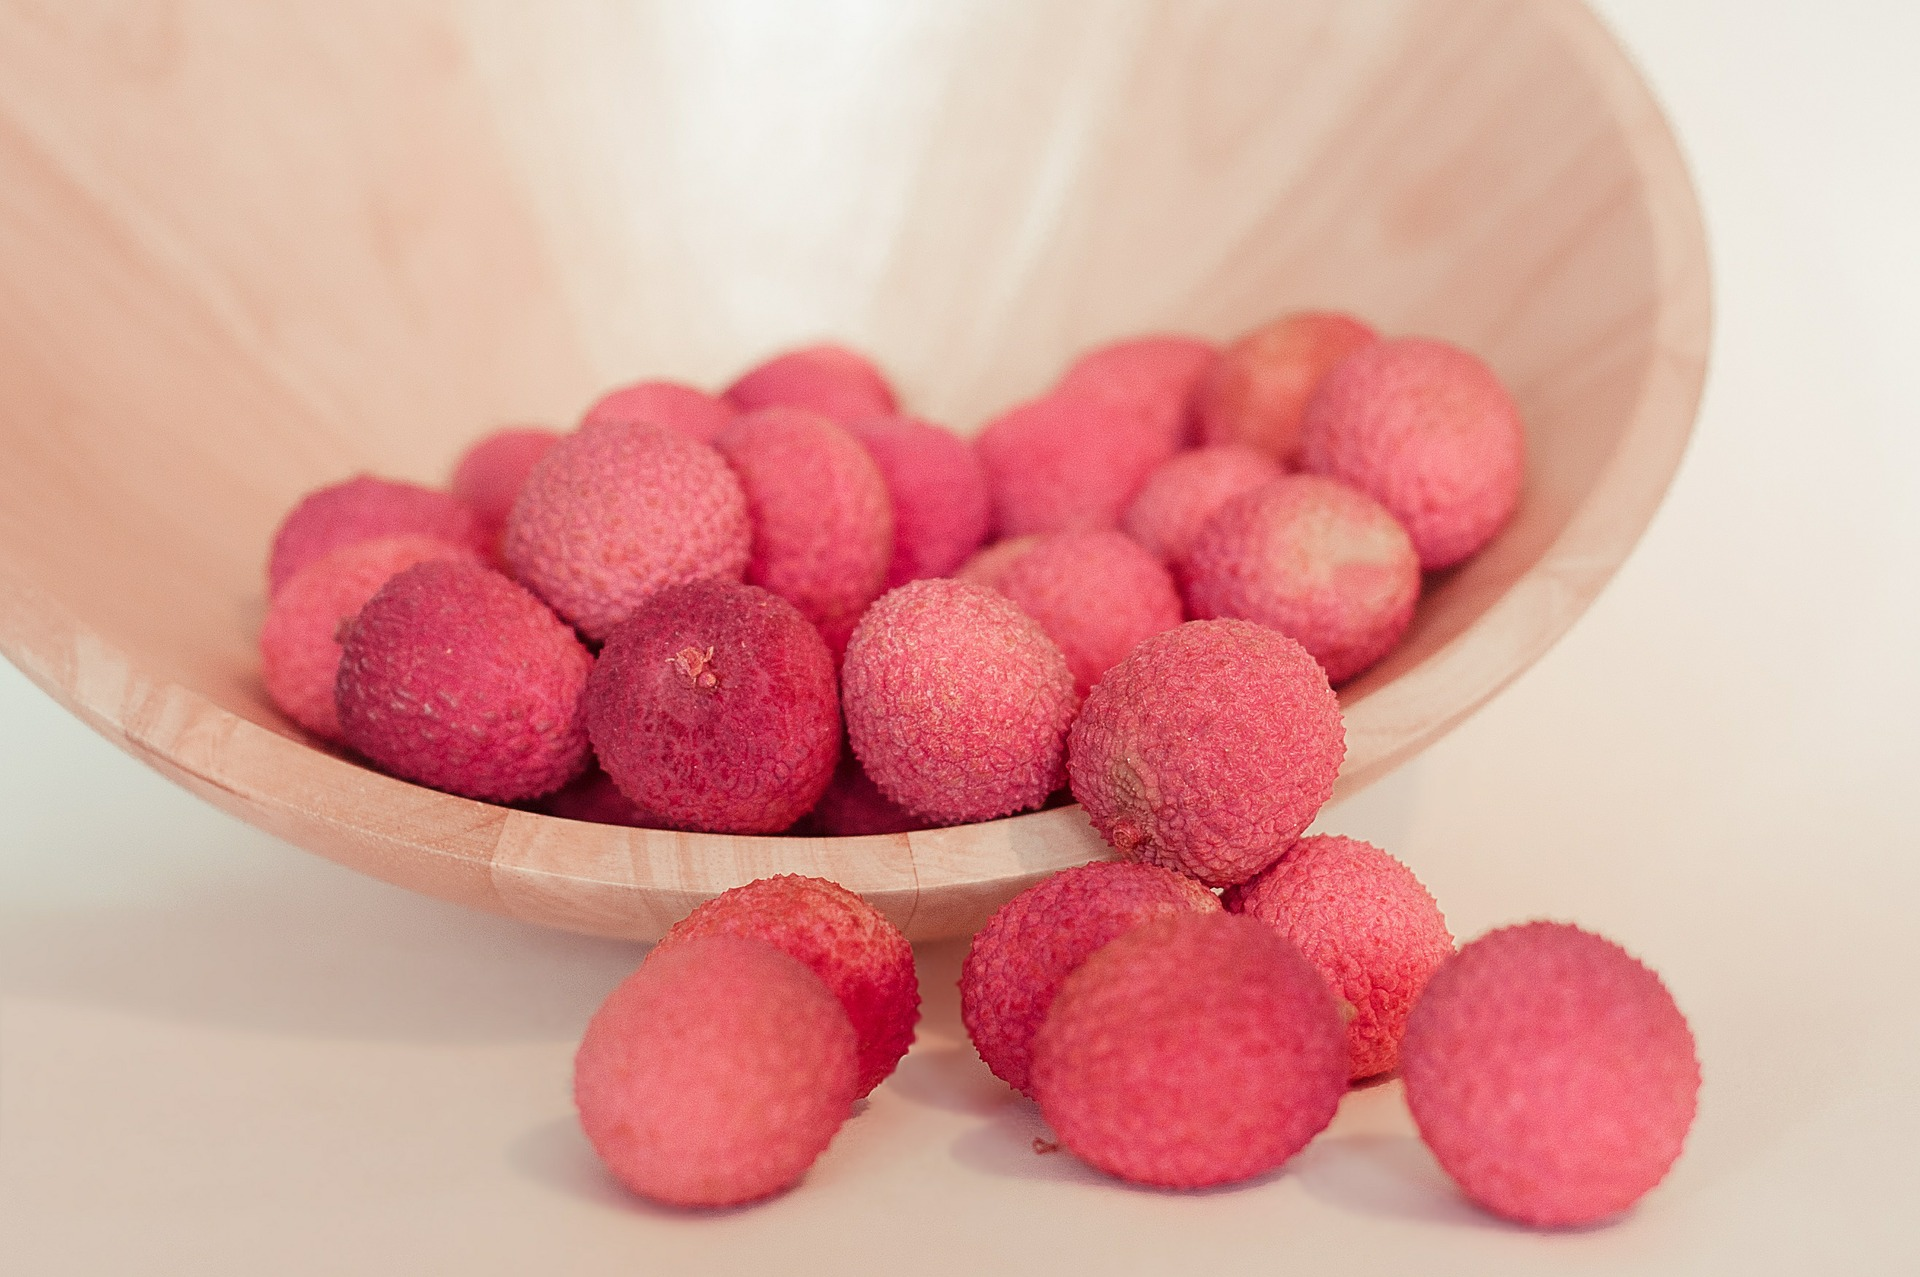 Lychee Litchi Fruit Nutritional Value Lychee Fruit Near Me Fresh Exotic